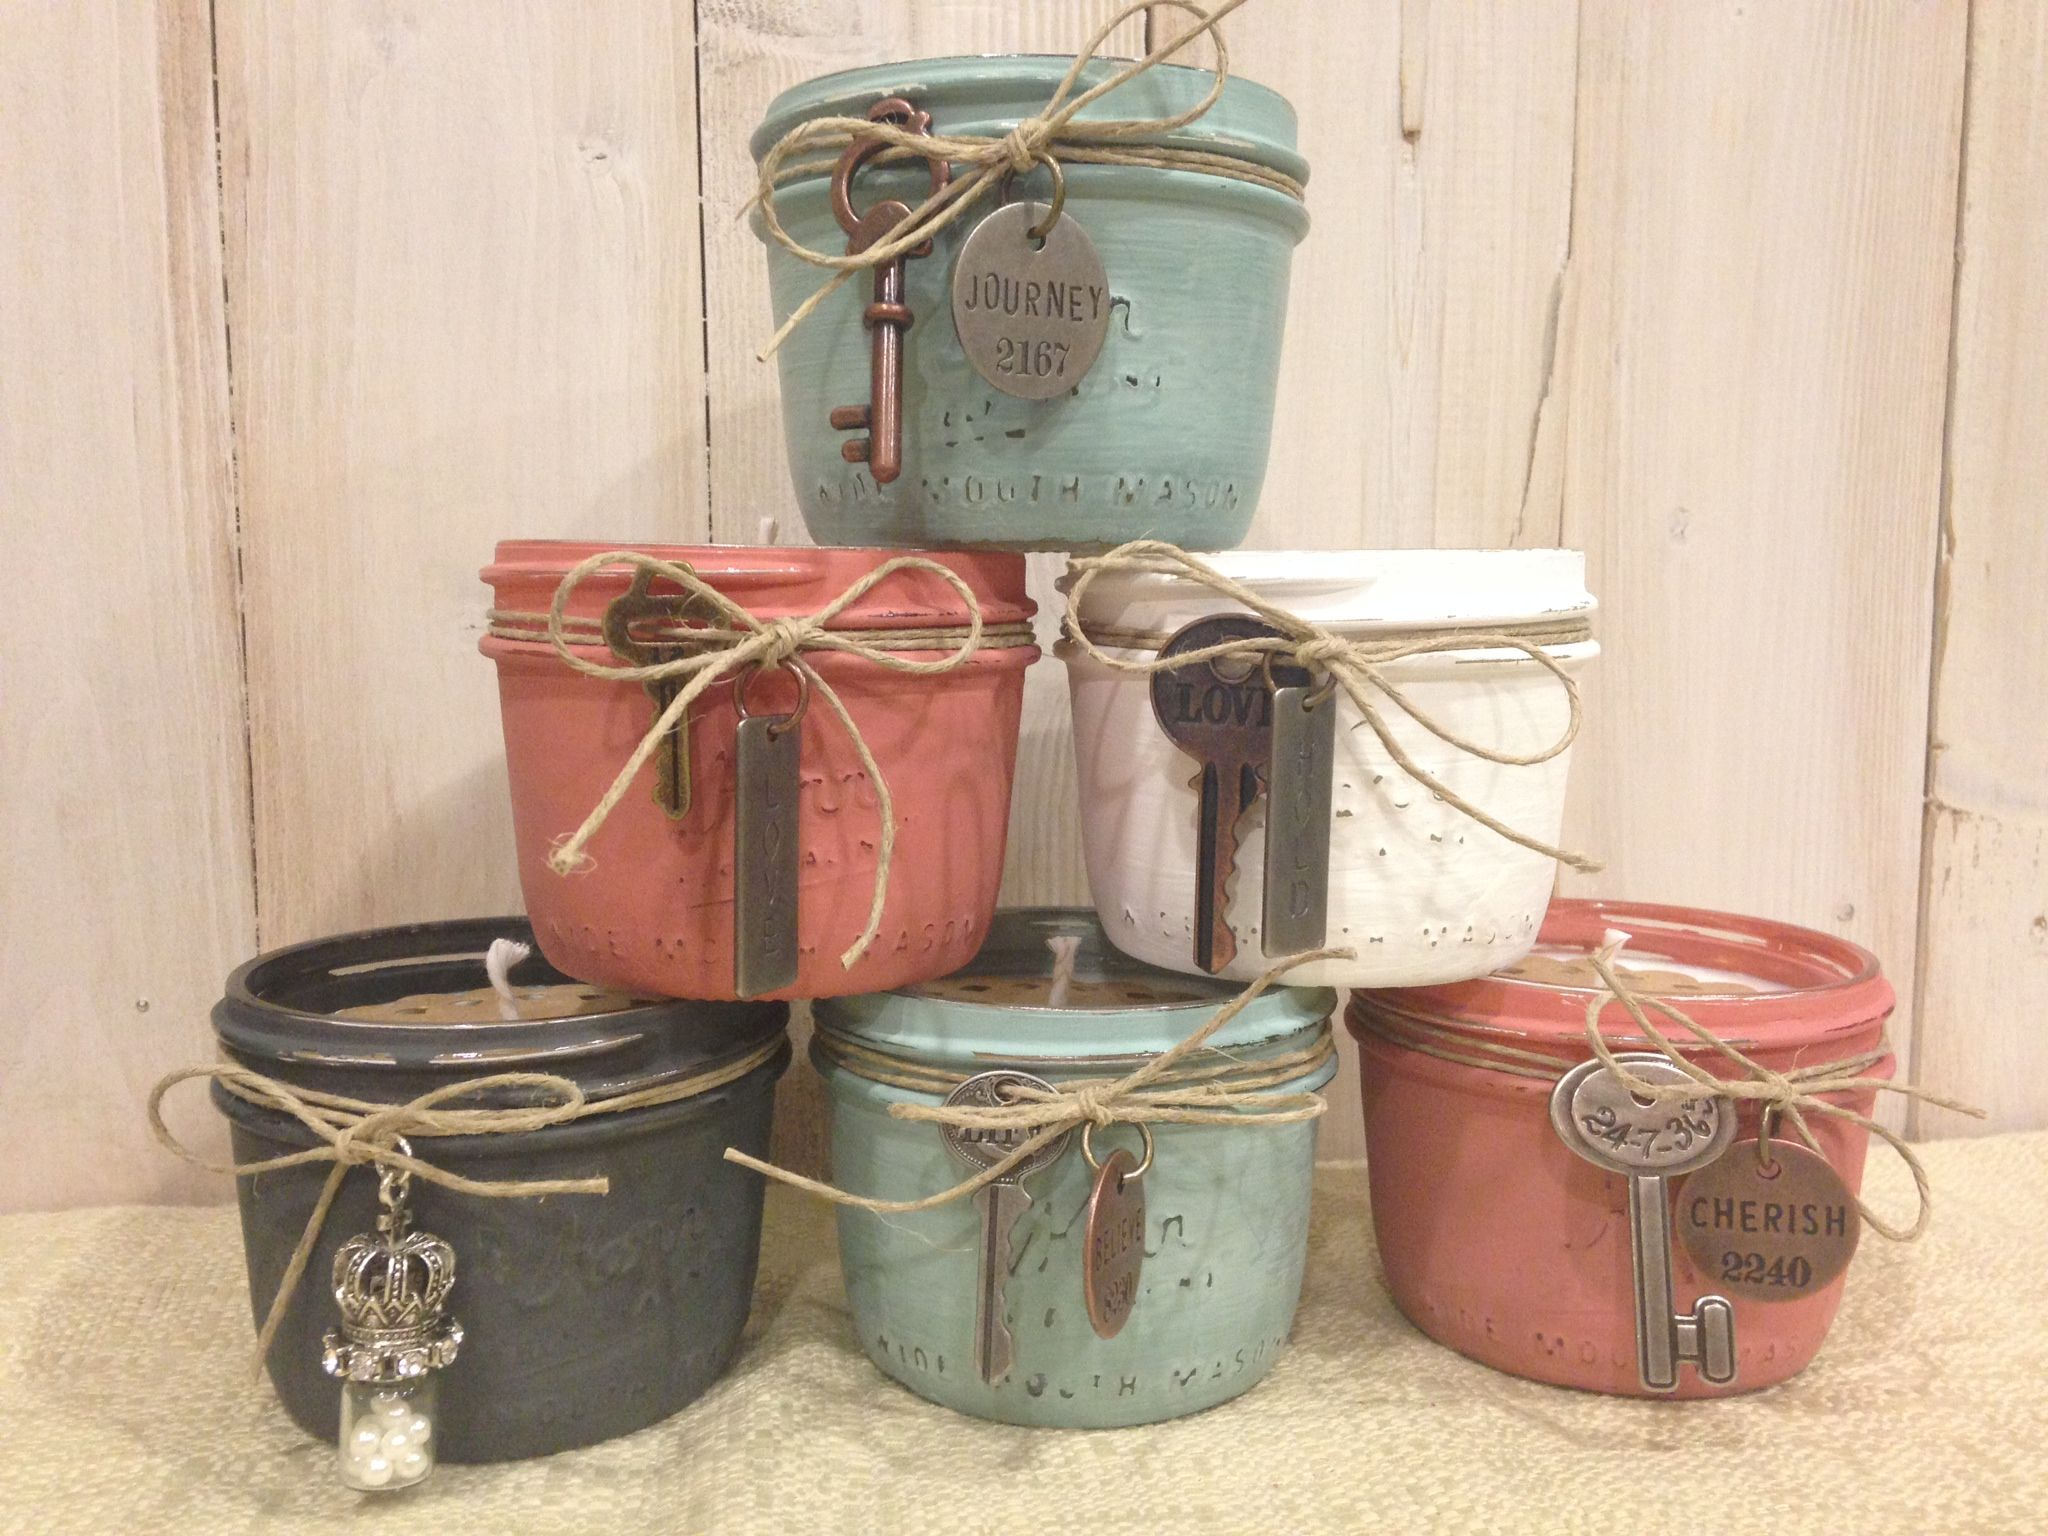 100 Handcrafted Soy Wax Mason Jar Candles I Used Annie Sloan Chalk Paint Distressed Embellished Mason Jar Decorations Mason Jar Crafts Mason Jar Candles